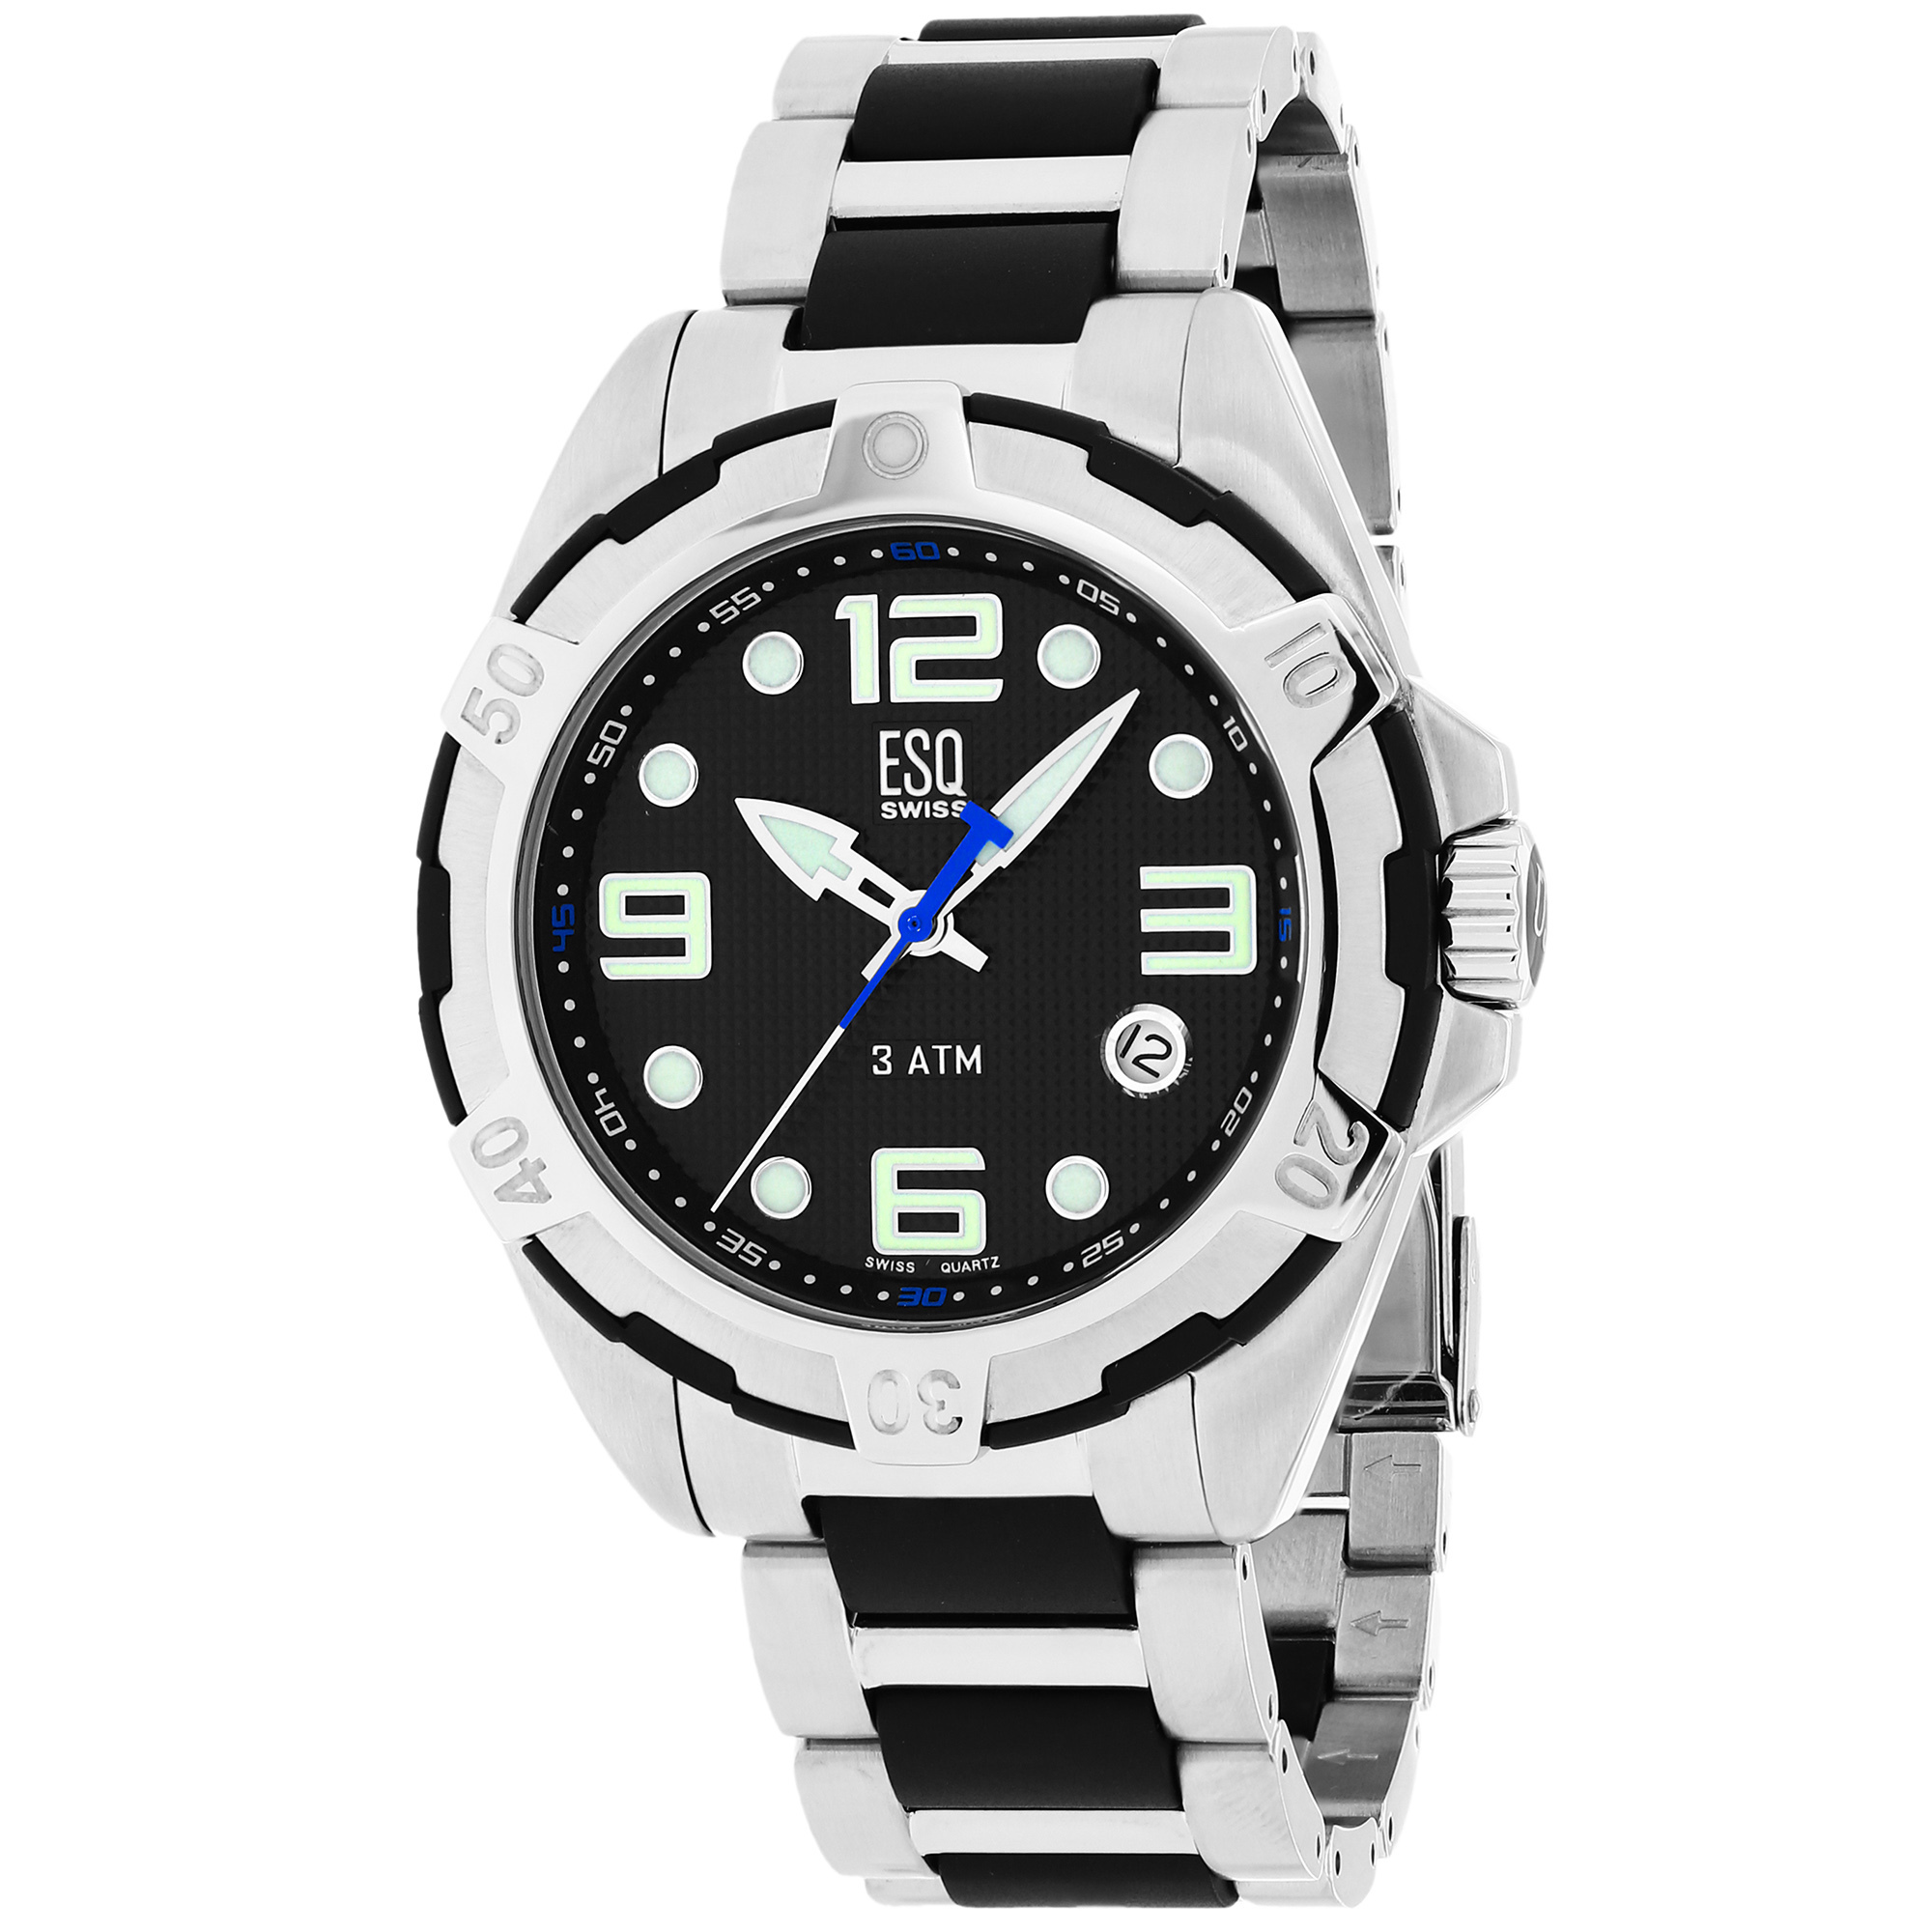 movado intl list mechanical swiss watches formal watch price s esq philippines modern for classic men